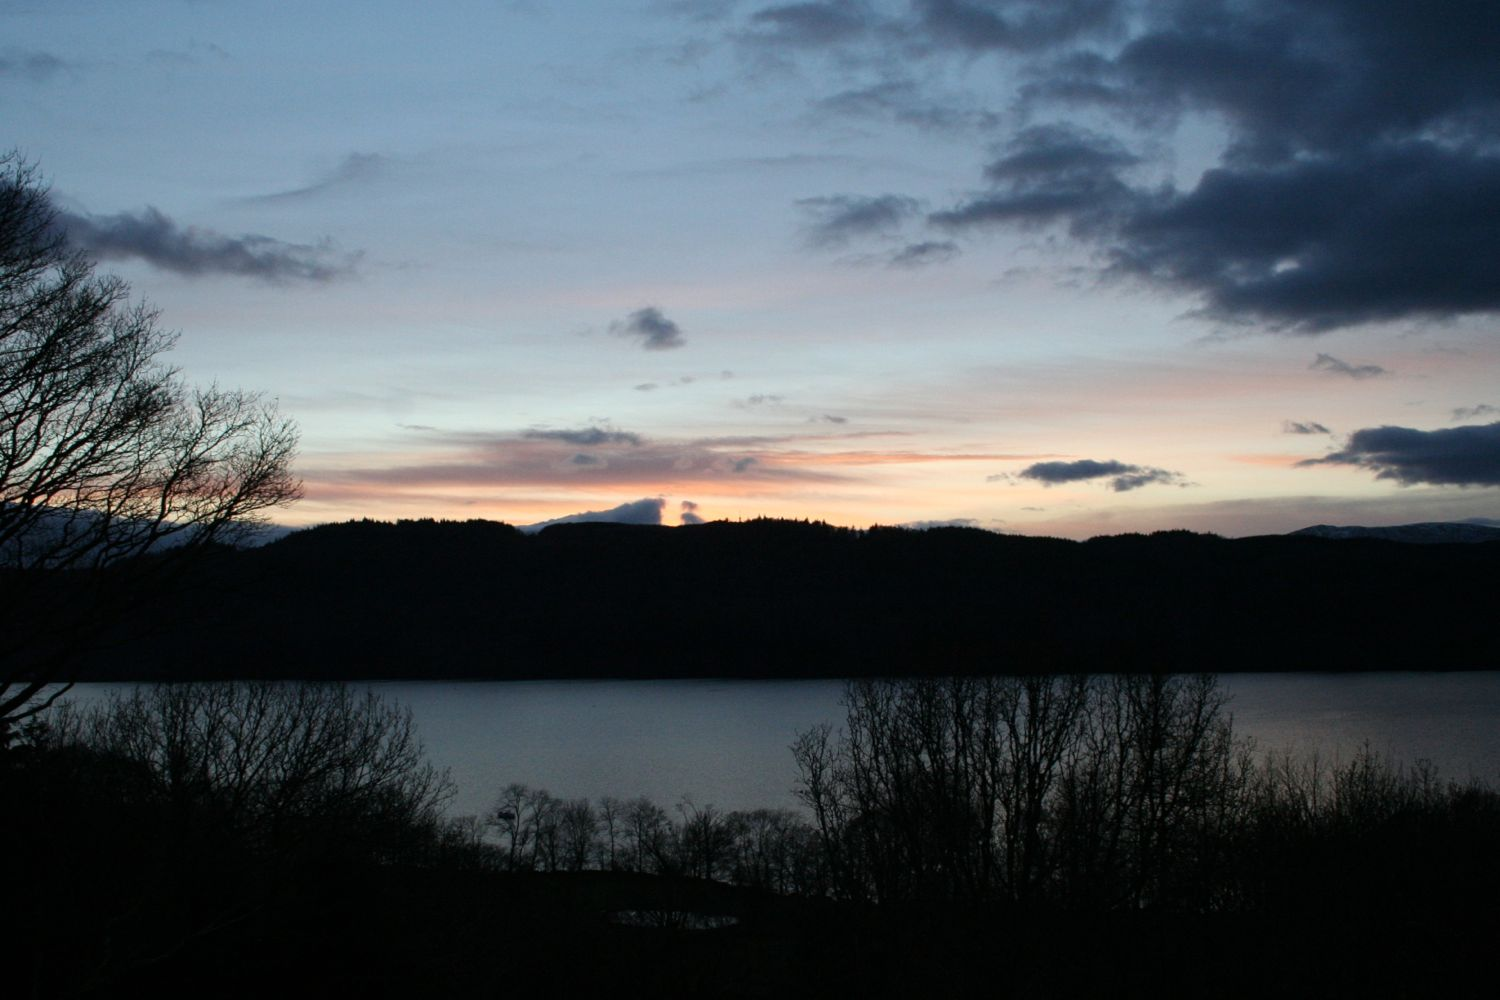 Looking over Windermere at Sunset